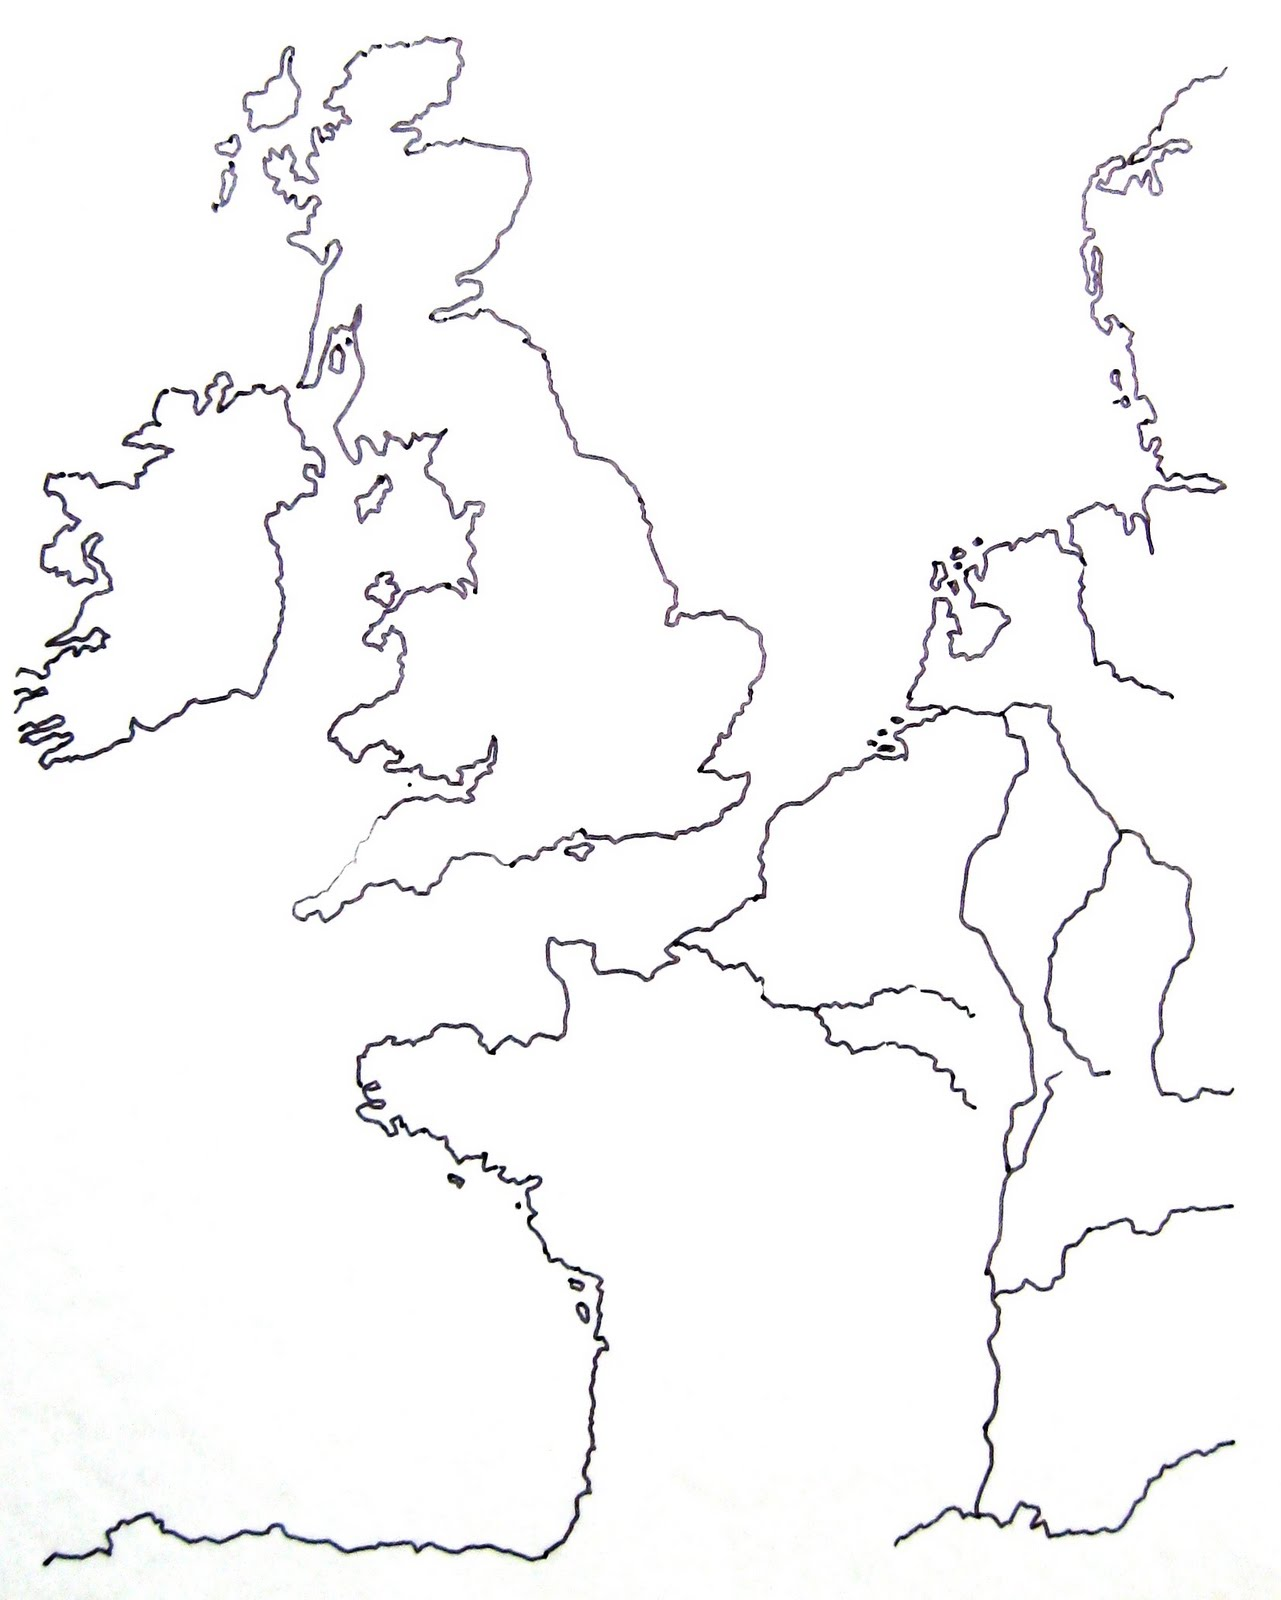 France Map Drawing at GetDrawings.com | Free for personal use France ...